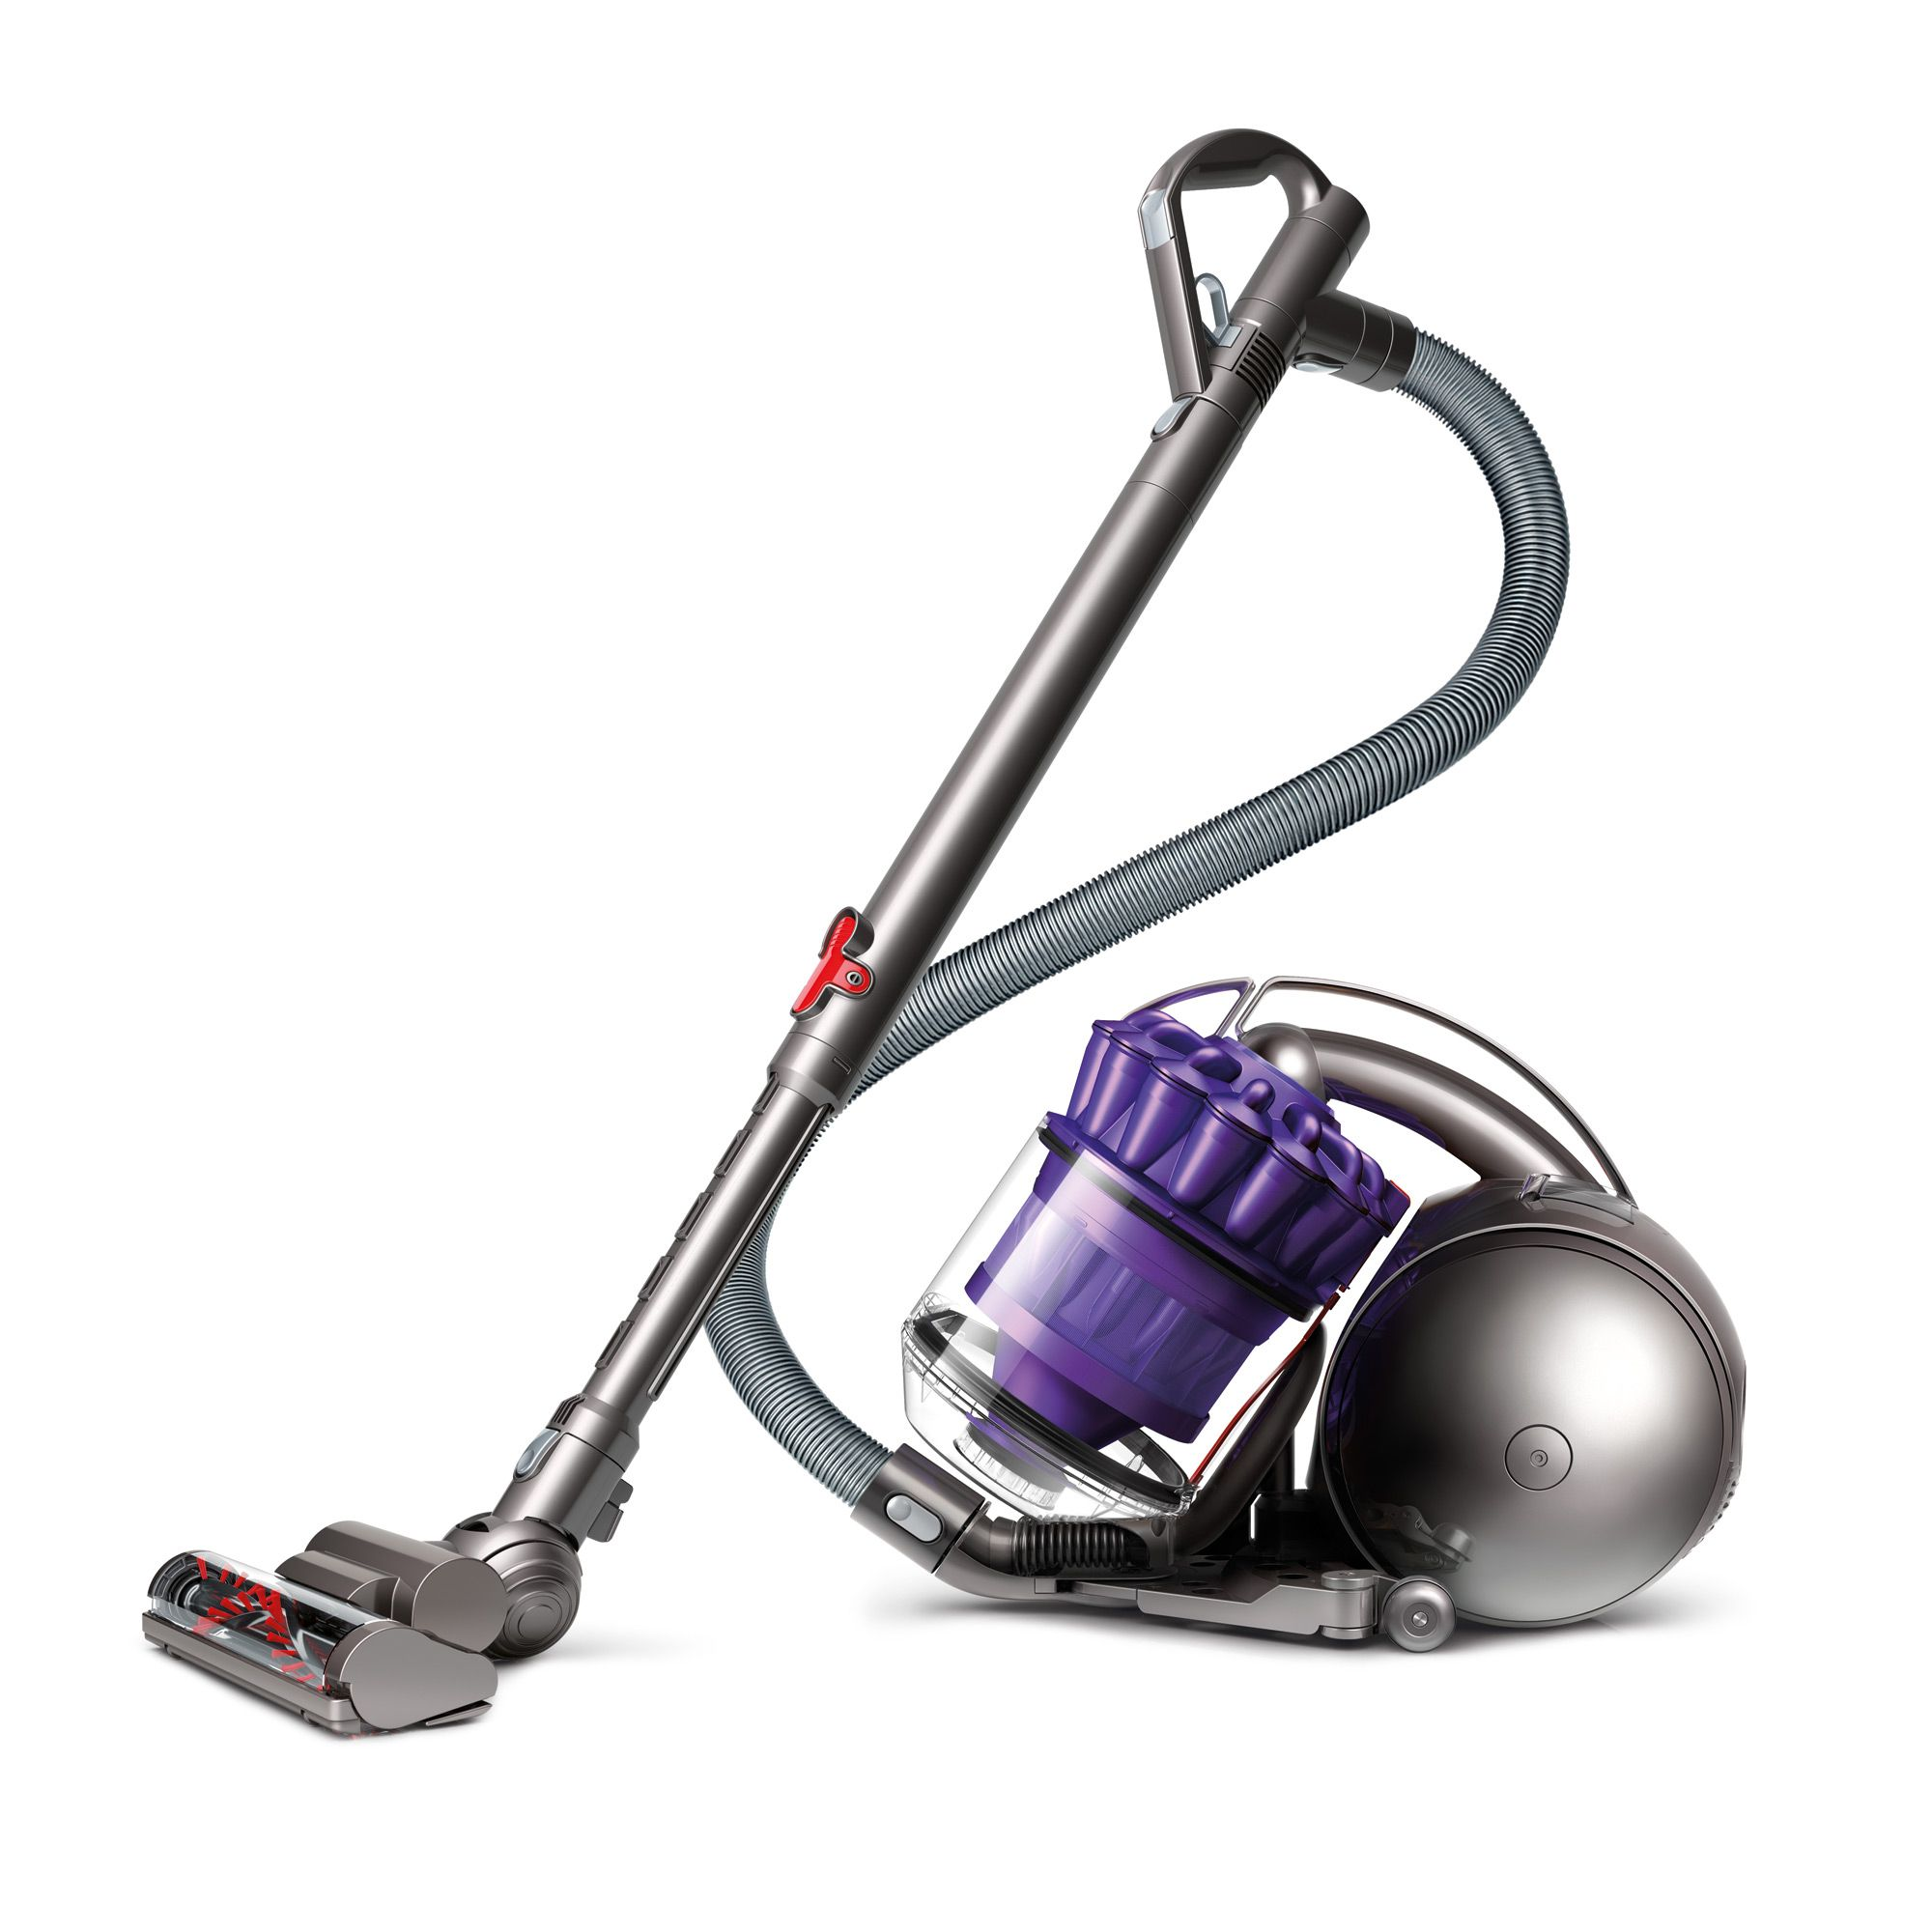 DC39 Animal Cylinder Vacuum Cleaner